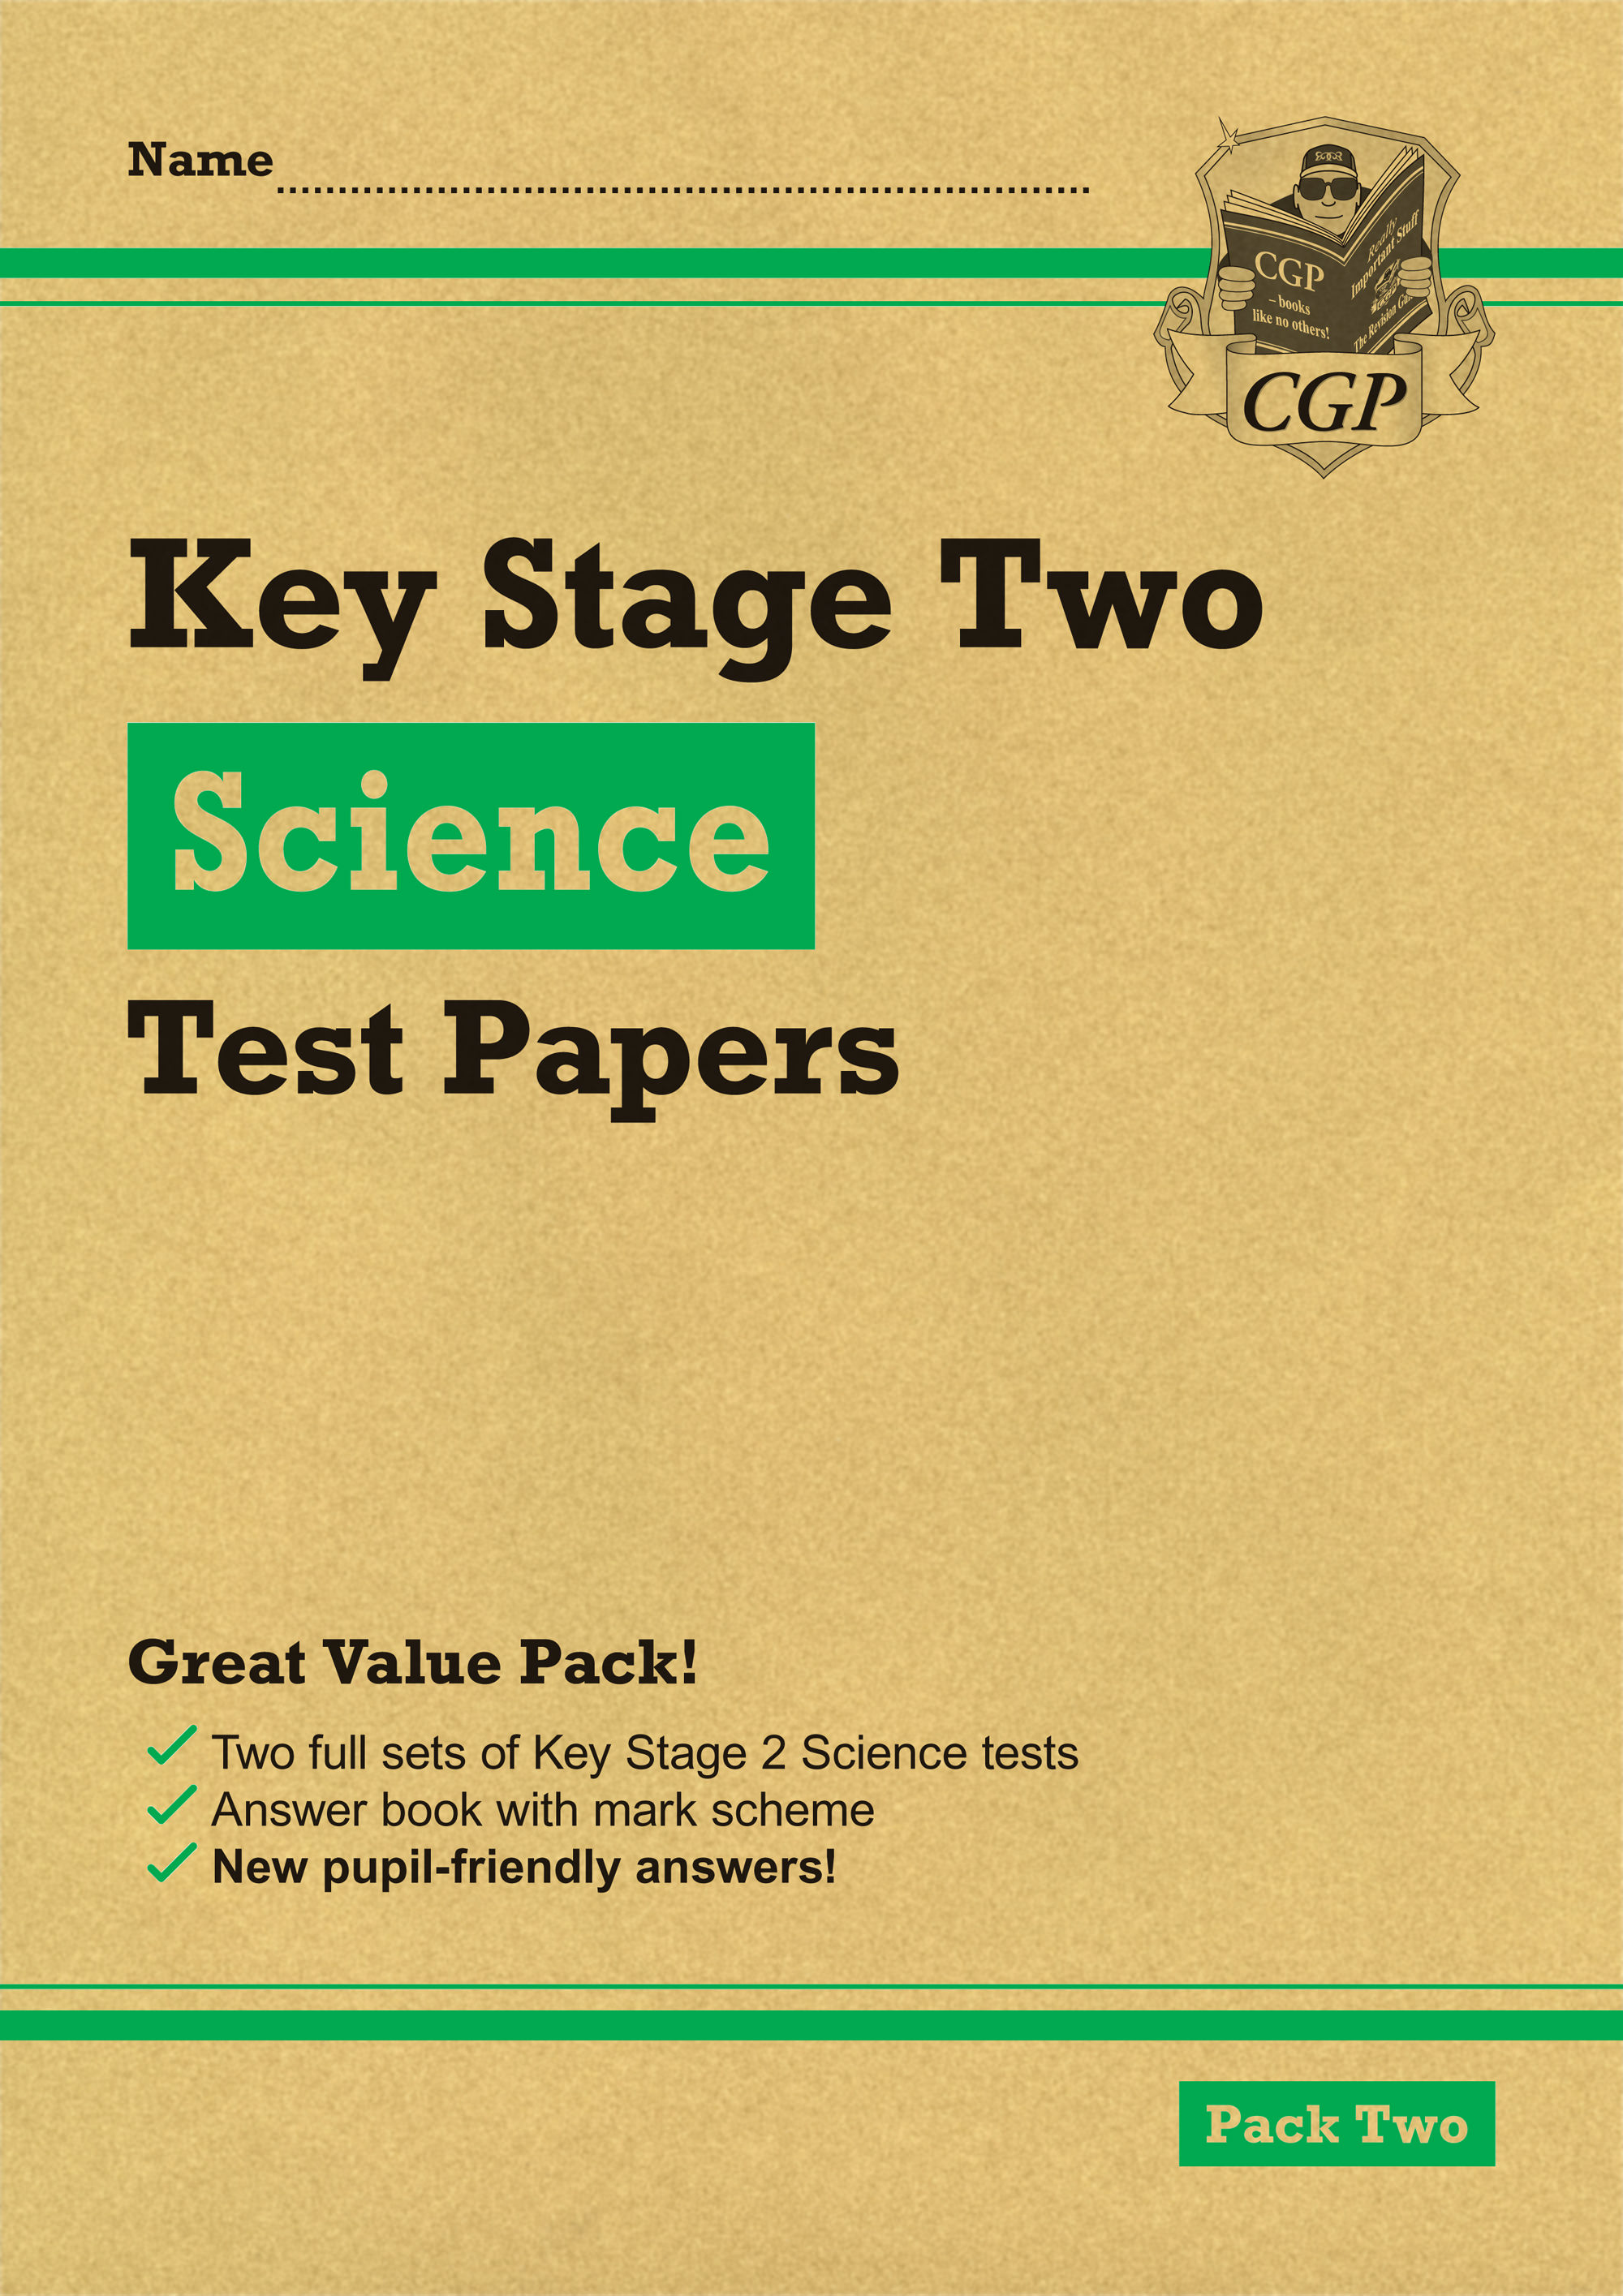 SHGP24 - New KS2 Science Tests: Pack 2